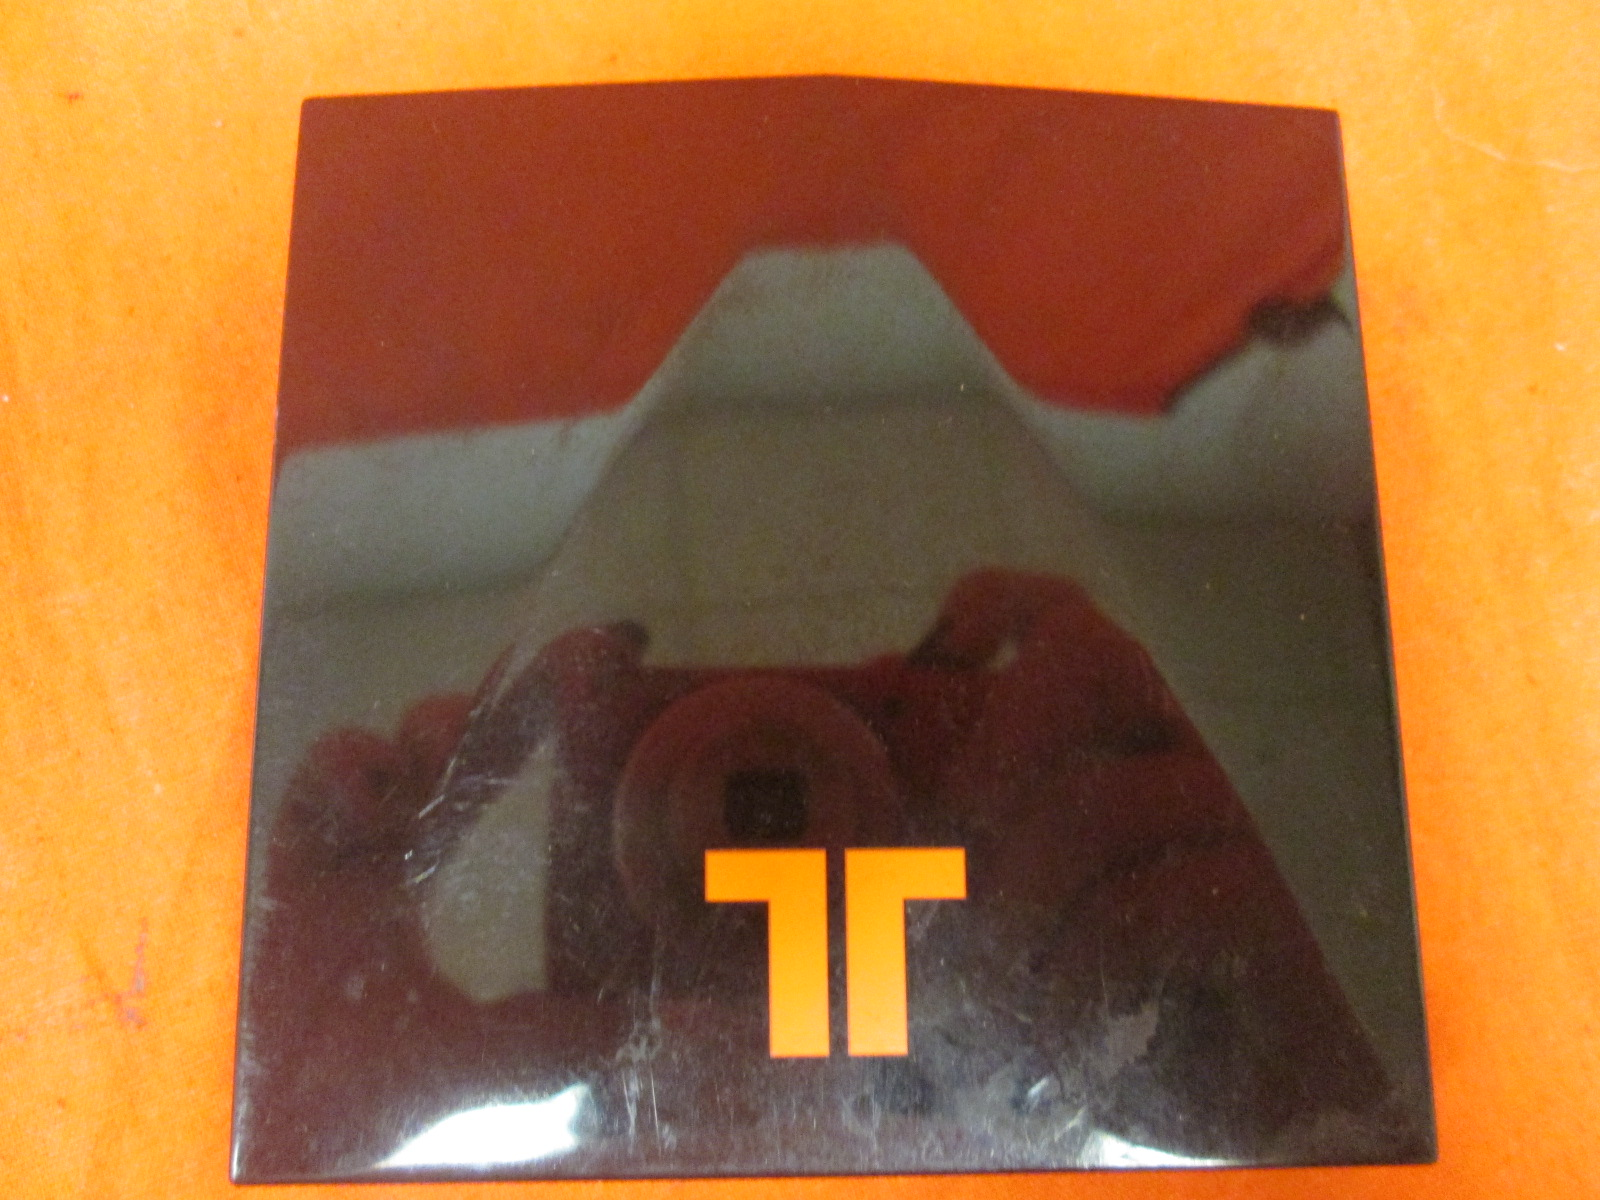 Broken Tritton Primer Wireless Stereo For Xbox 360